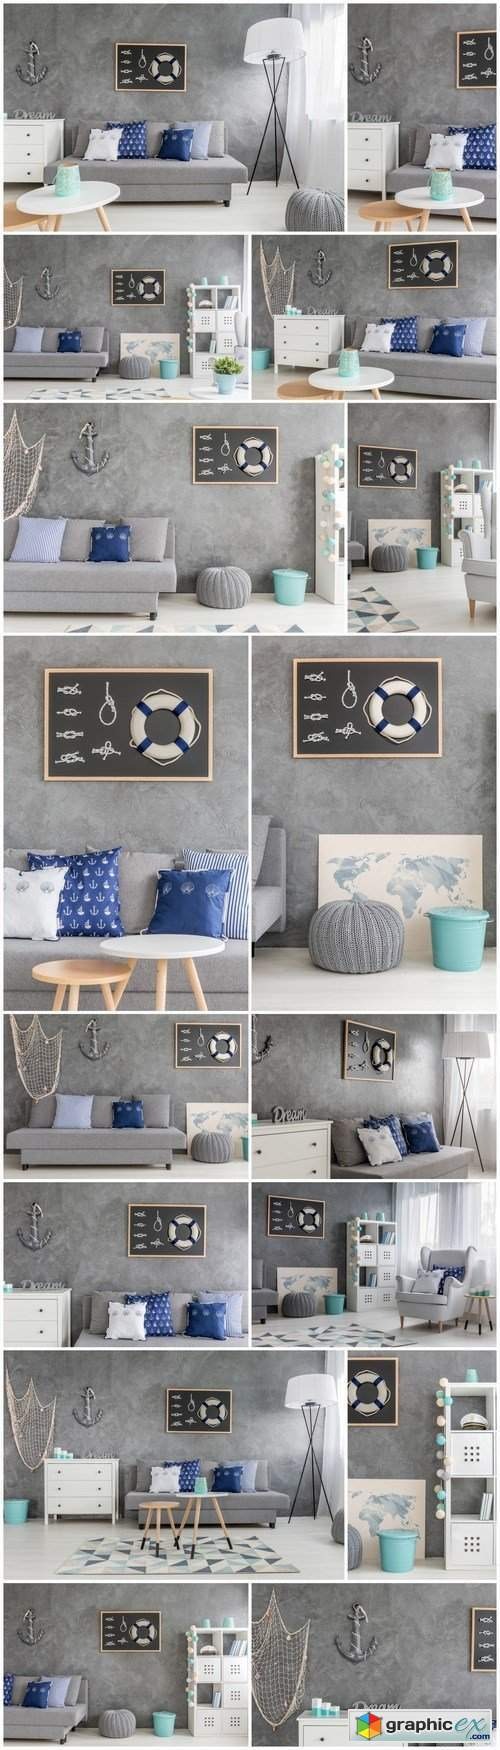 Living room with nautical decorations - 16xUHQ JPEG